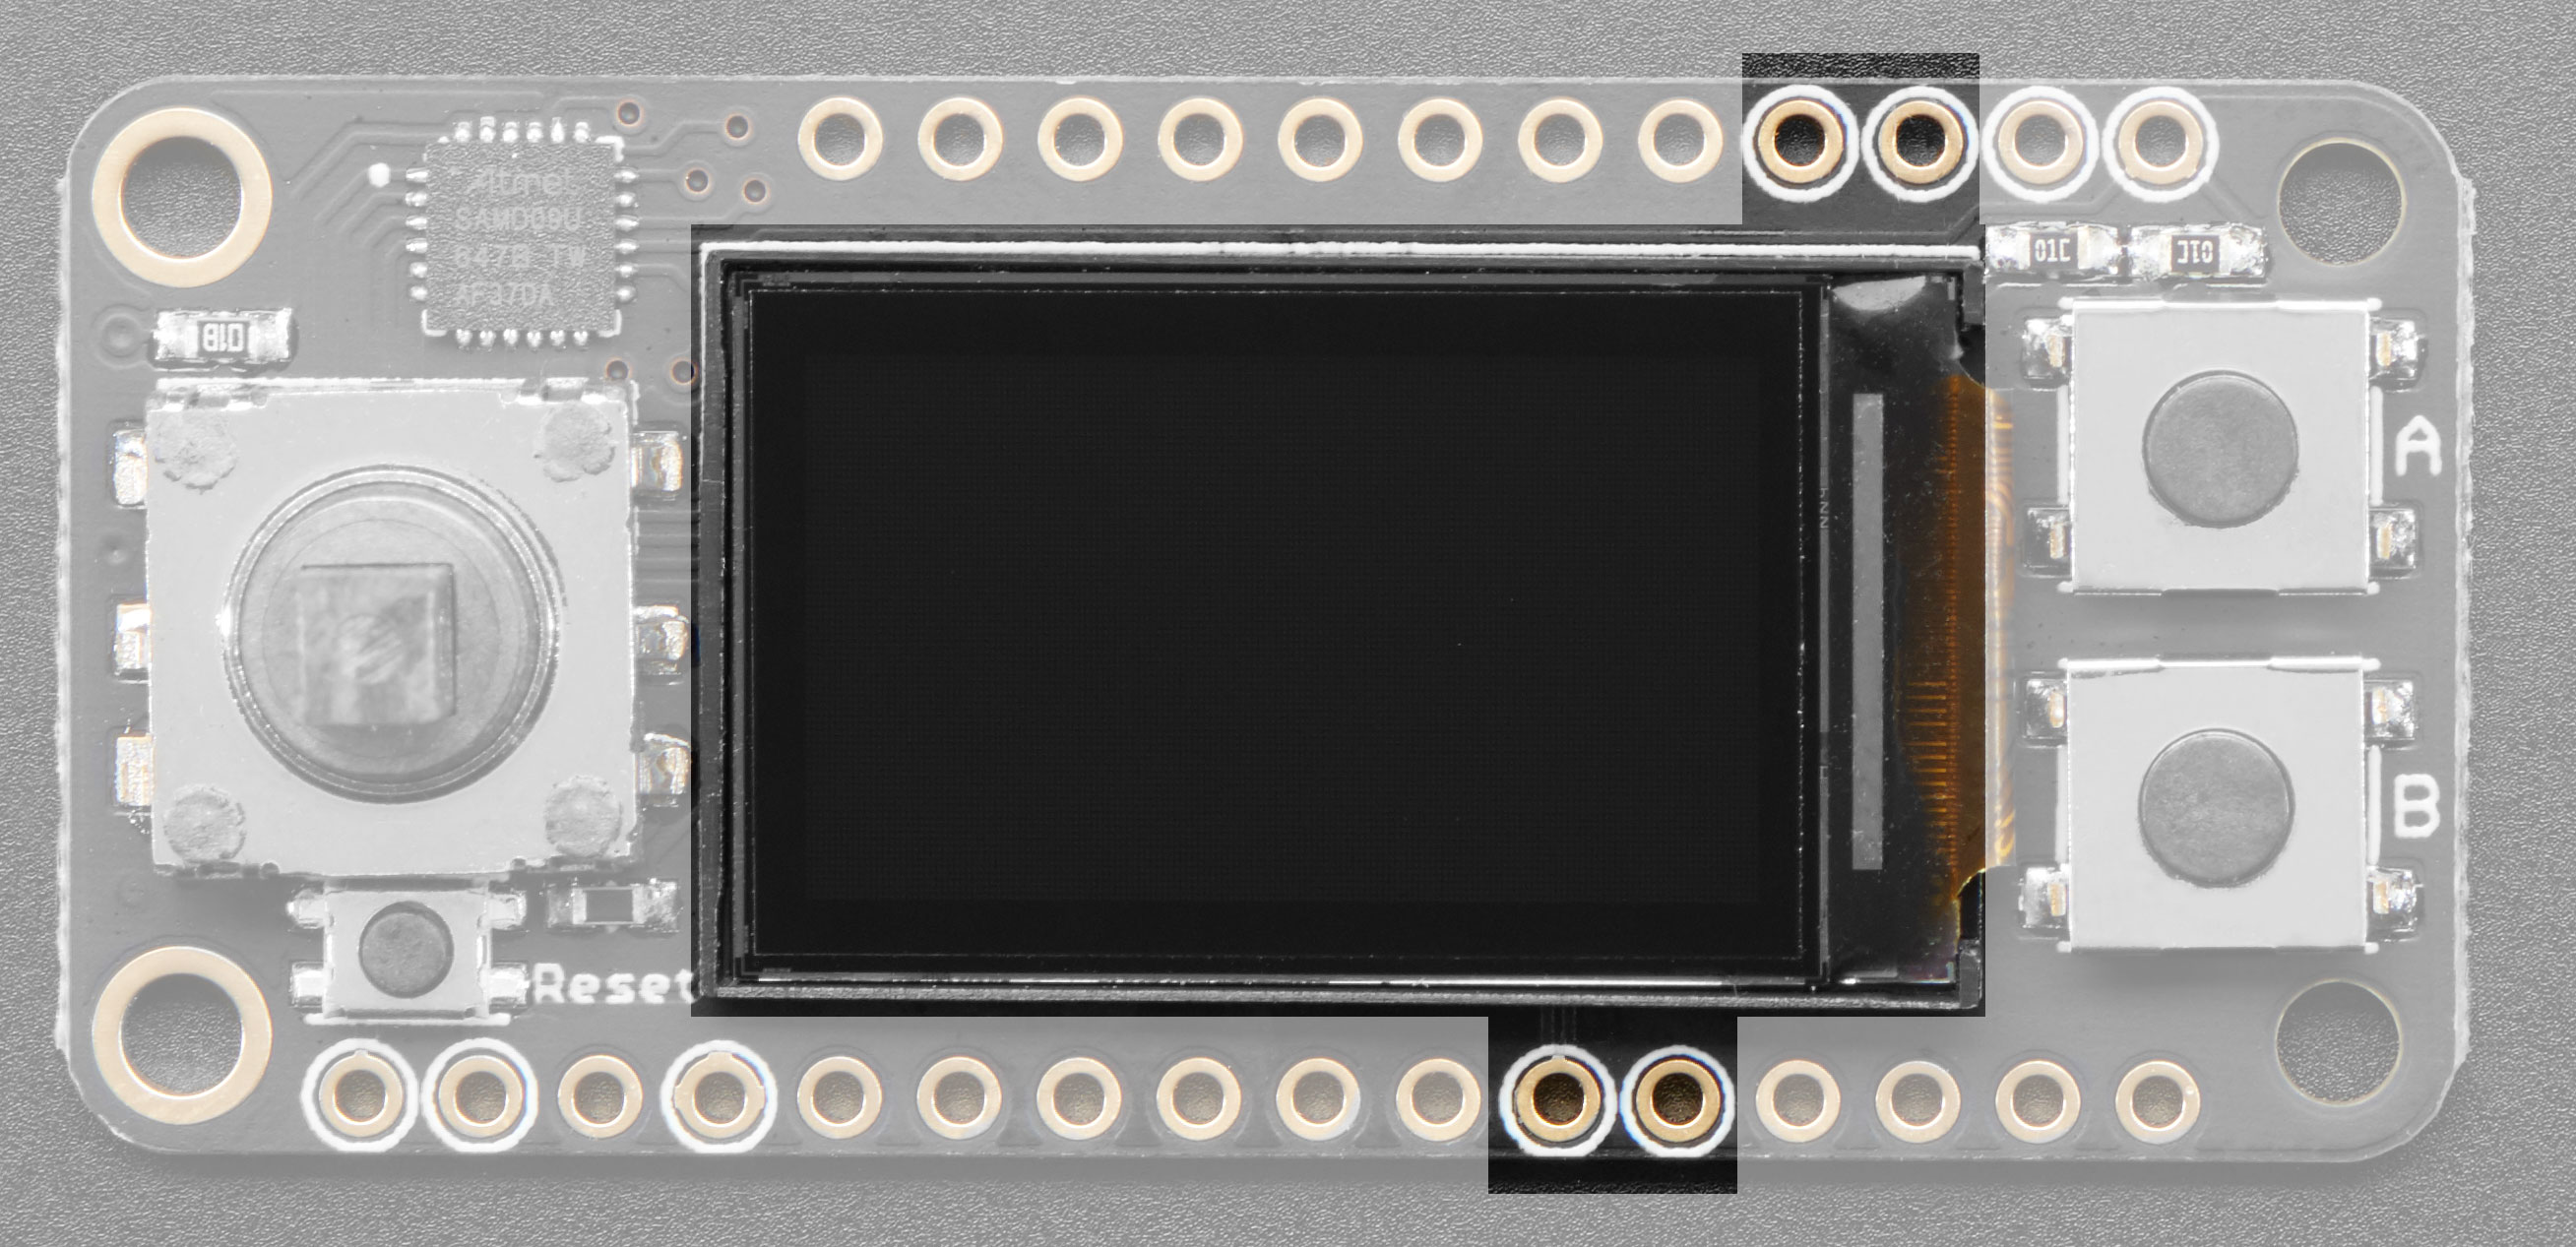 adafruit_products_display.jpg